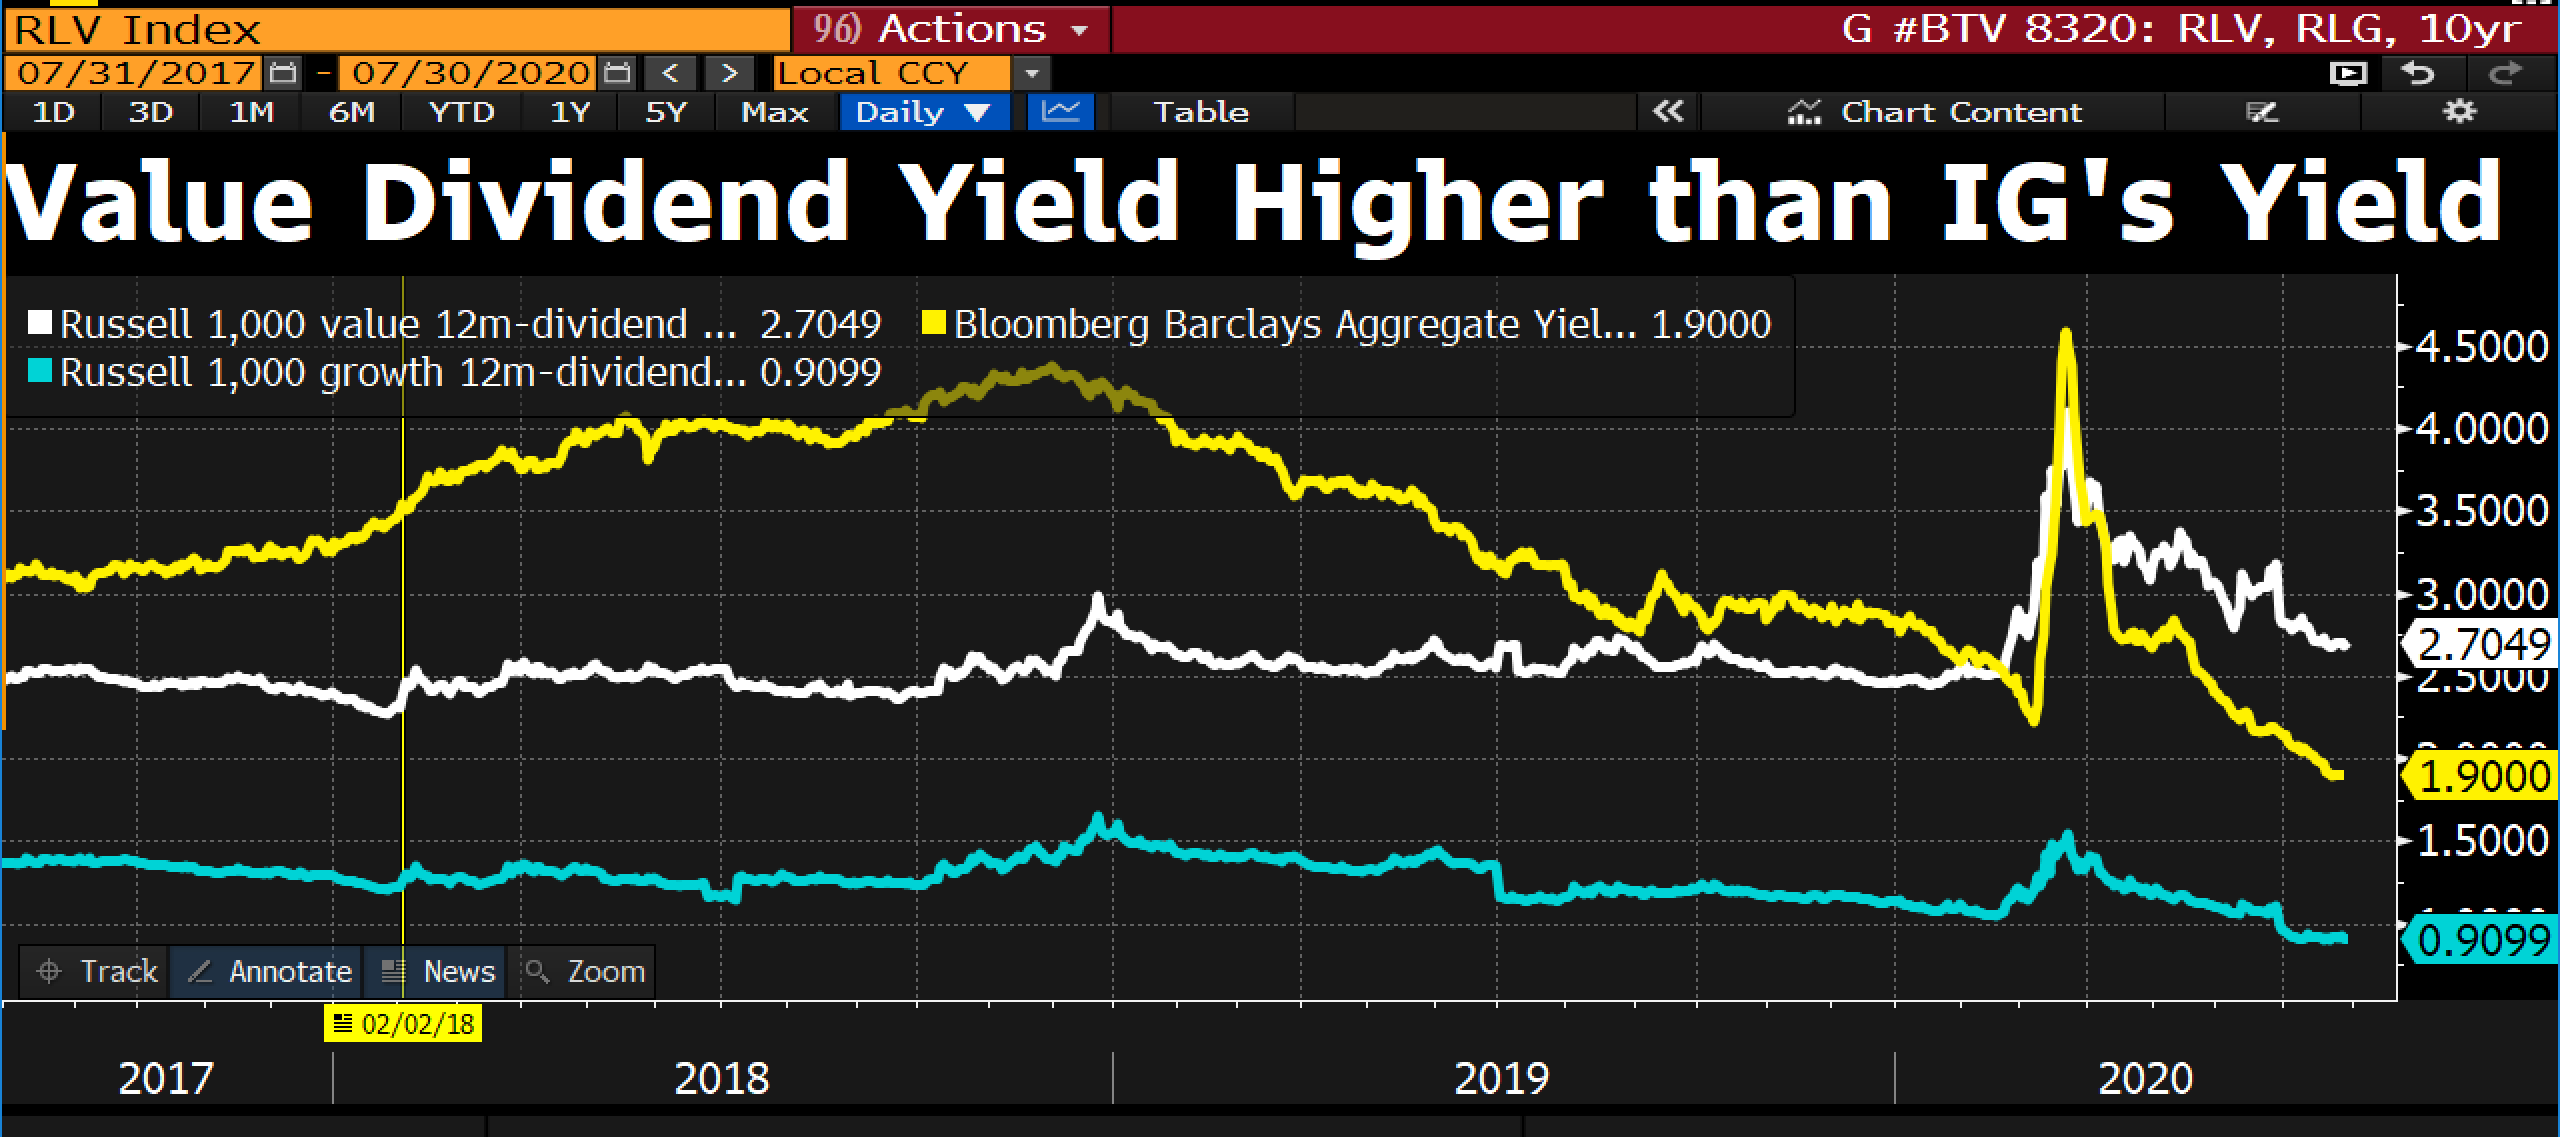 value dividend yield vs high yield